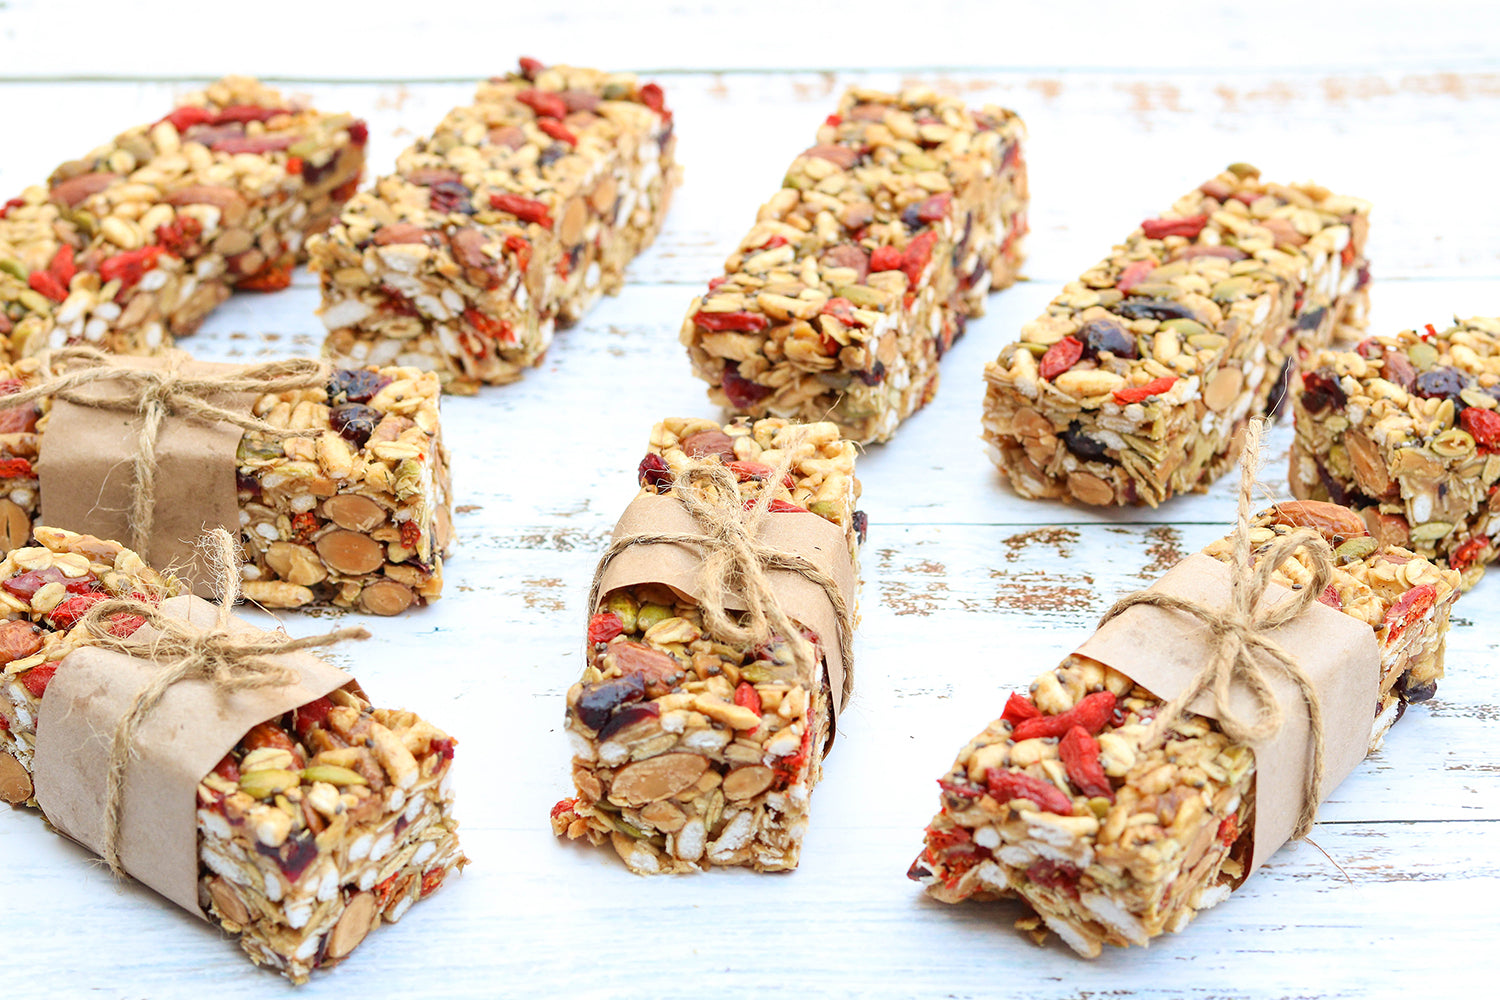 Superfood Muesli Bars